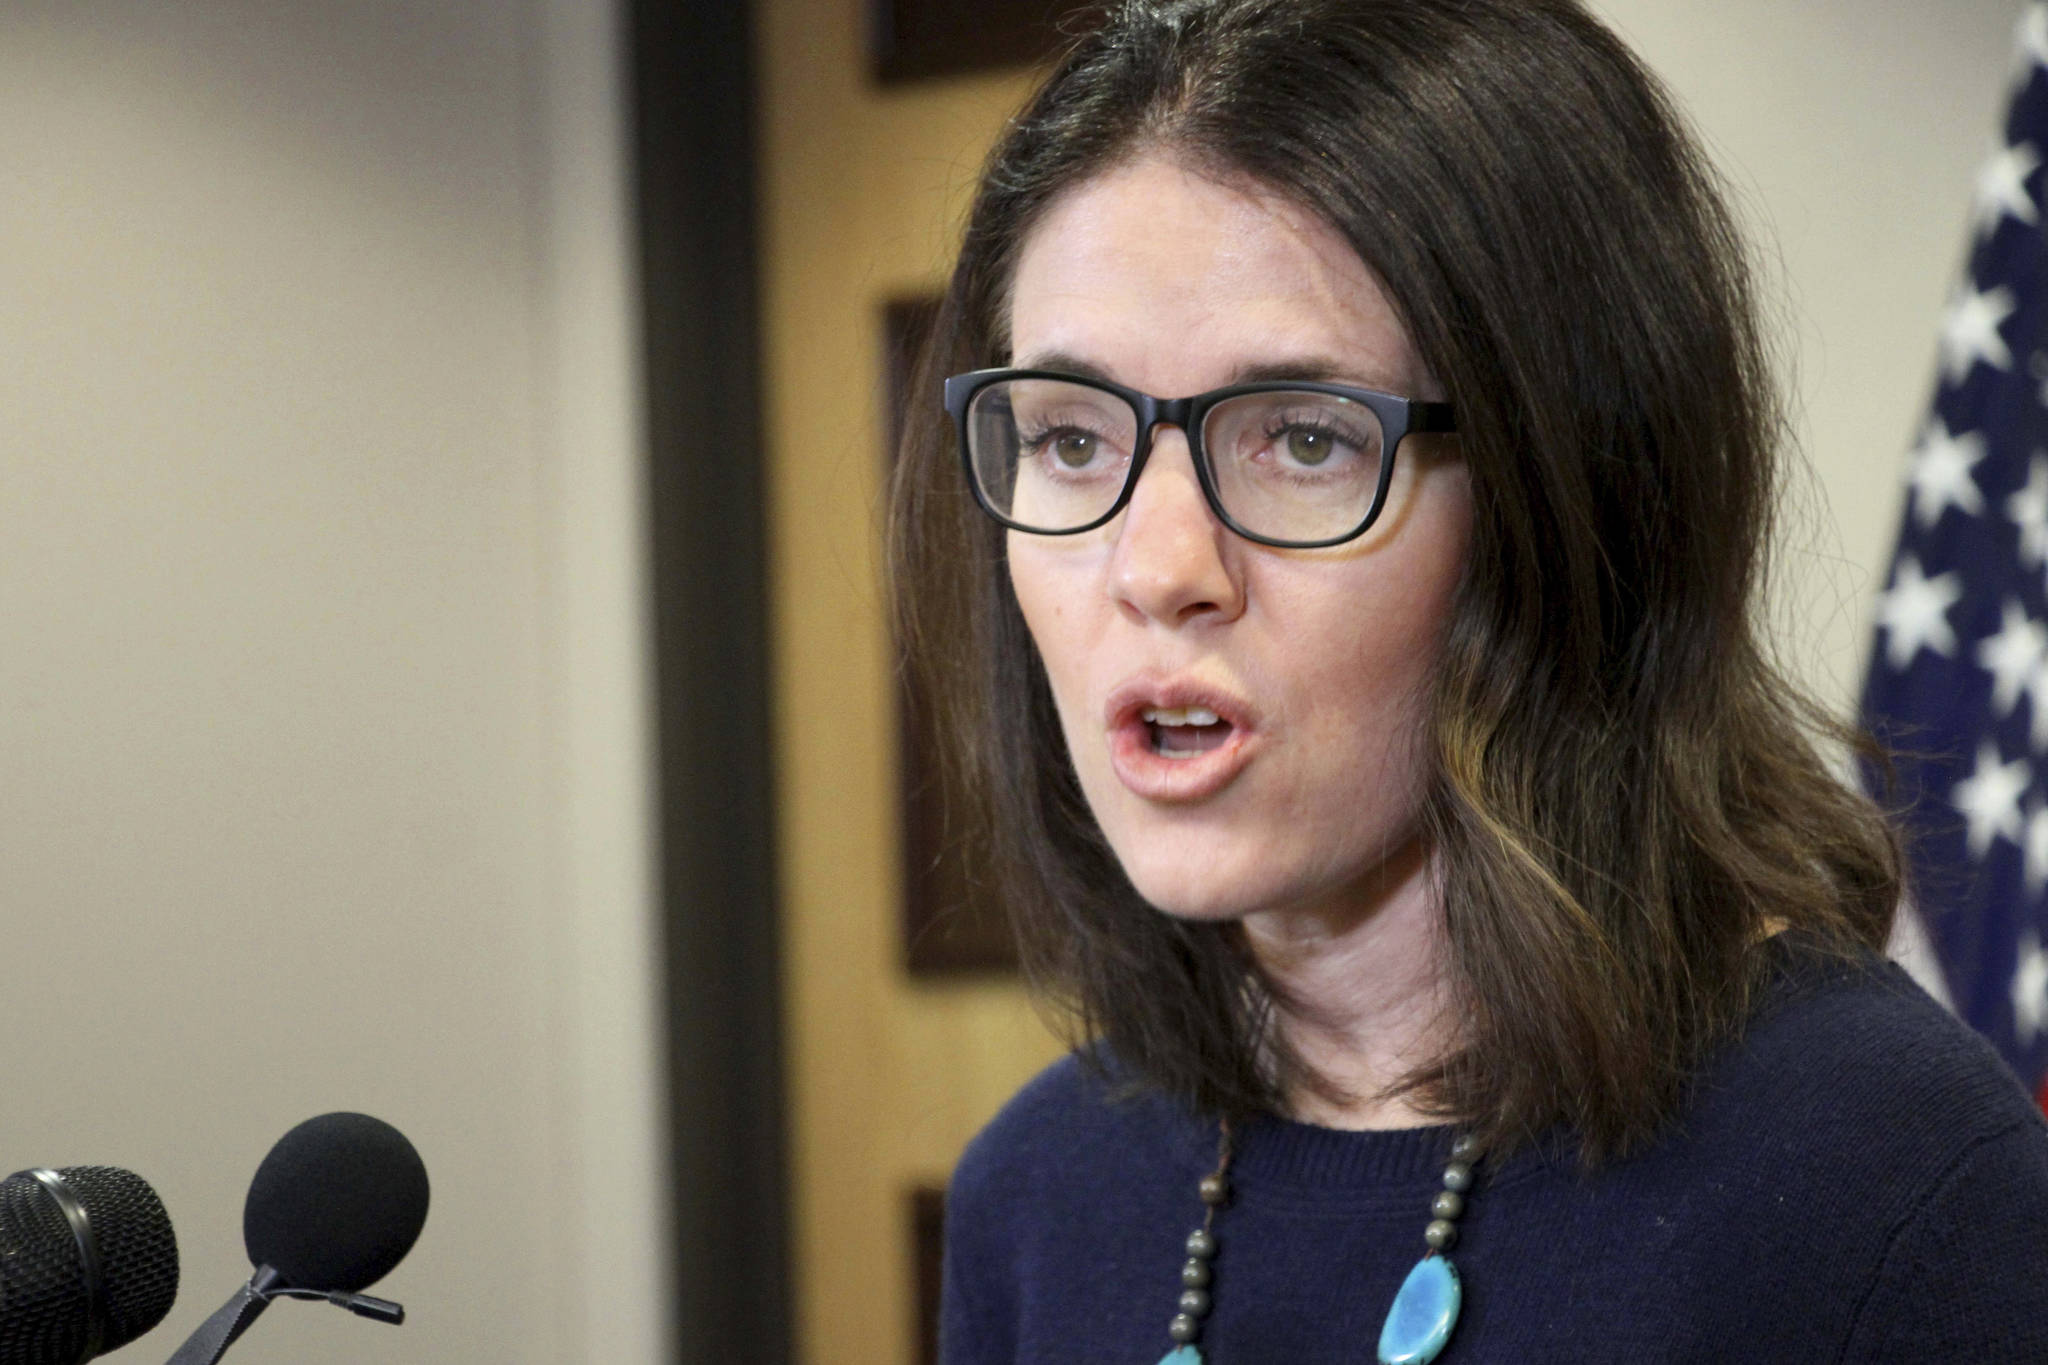 Dr. Anne Zink, the chief medical officer for the state of Alaska, addresses reporters at a news conference Monday in Anchorage. (AP Photo/Mark Thiessen)